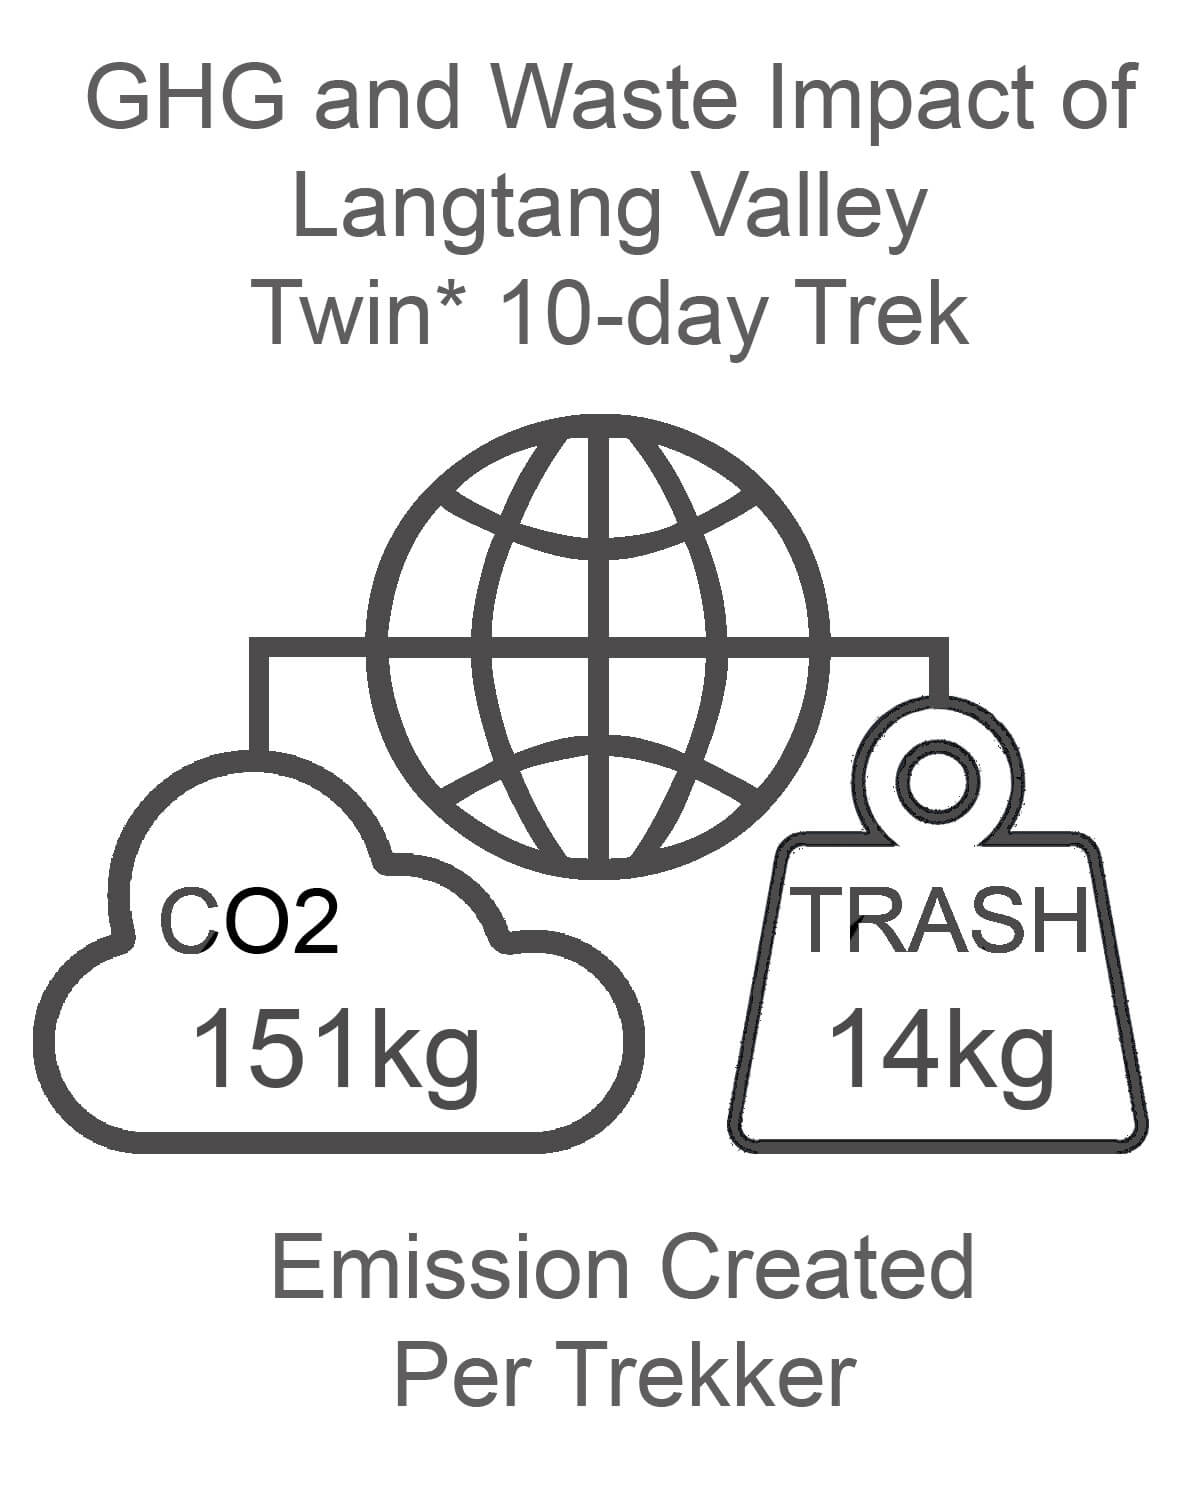 Langtang Valley GHG and Waste Impact TWIN